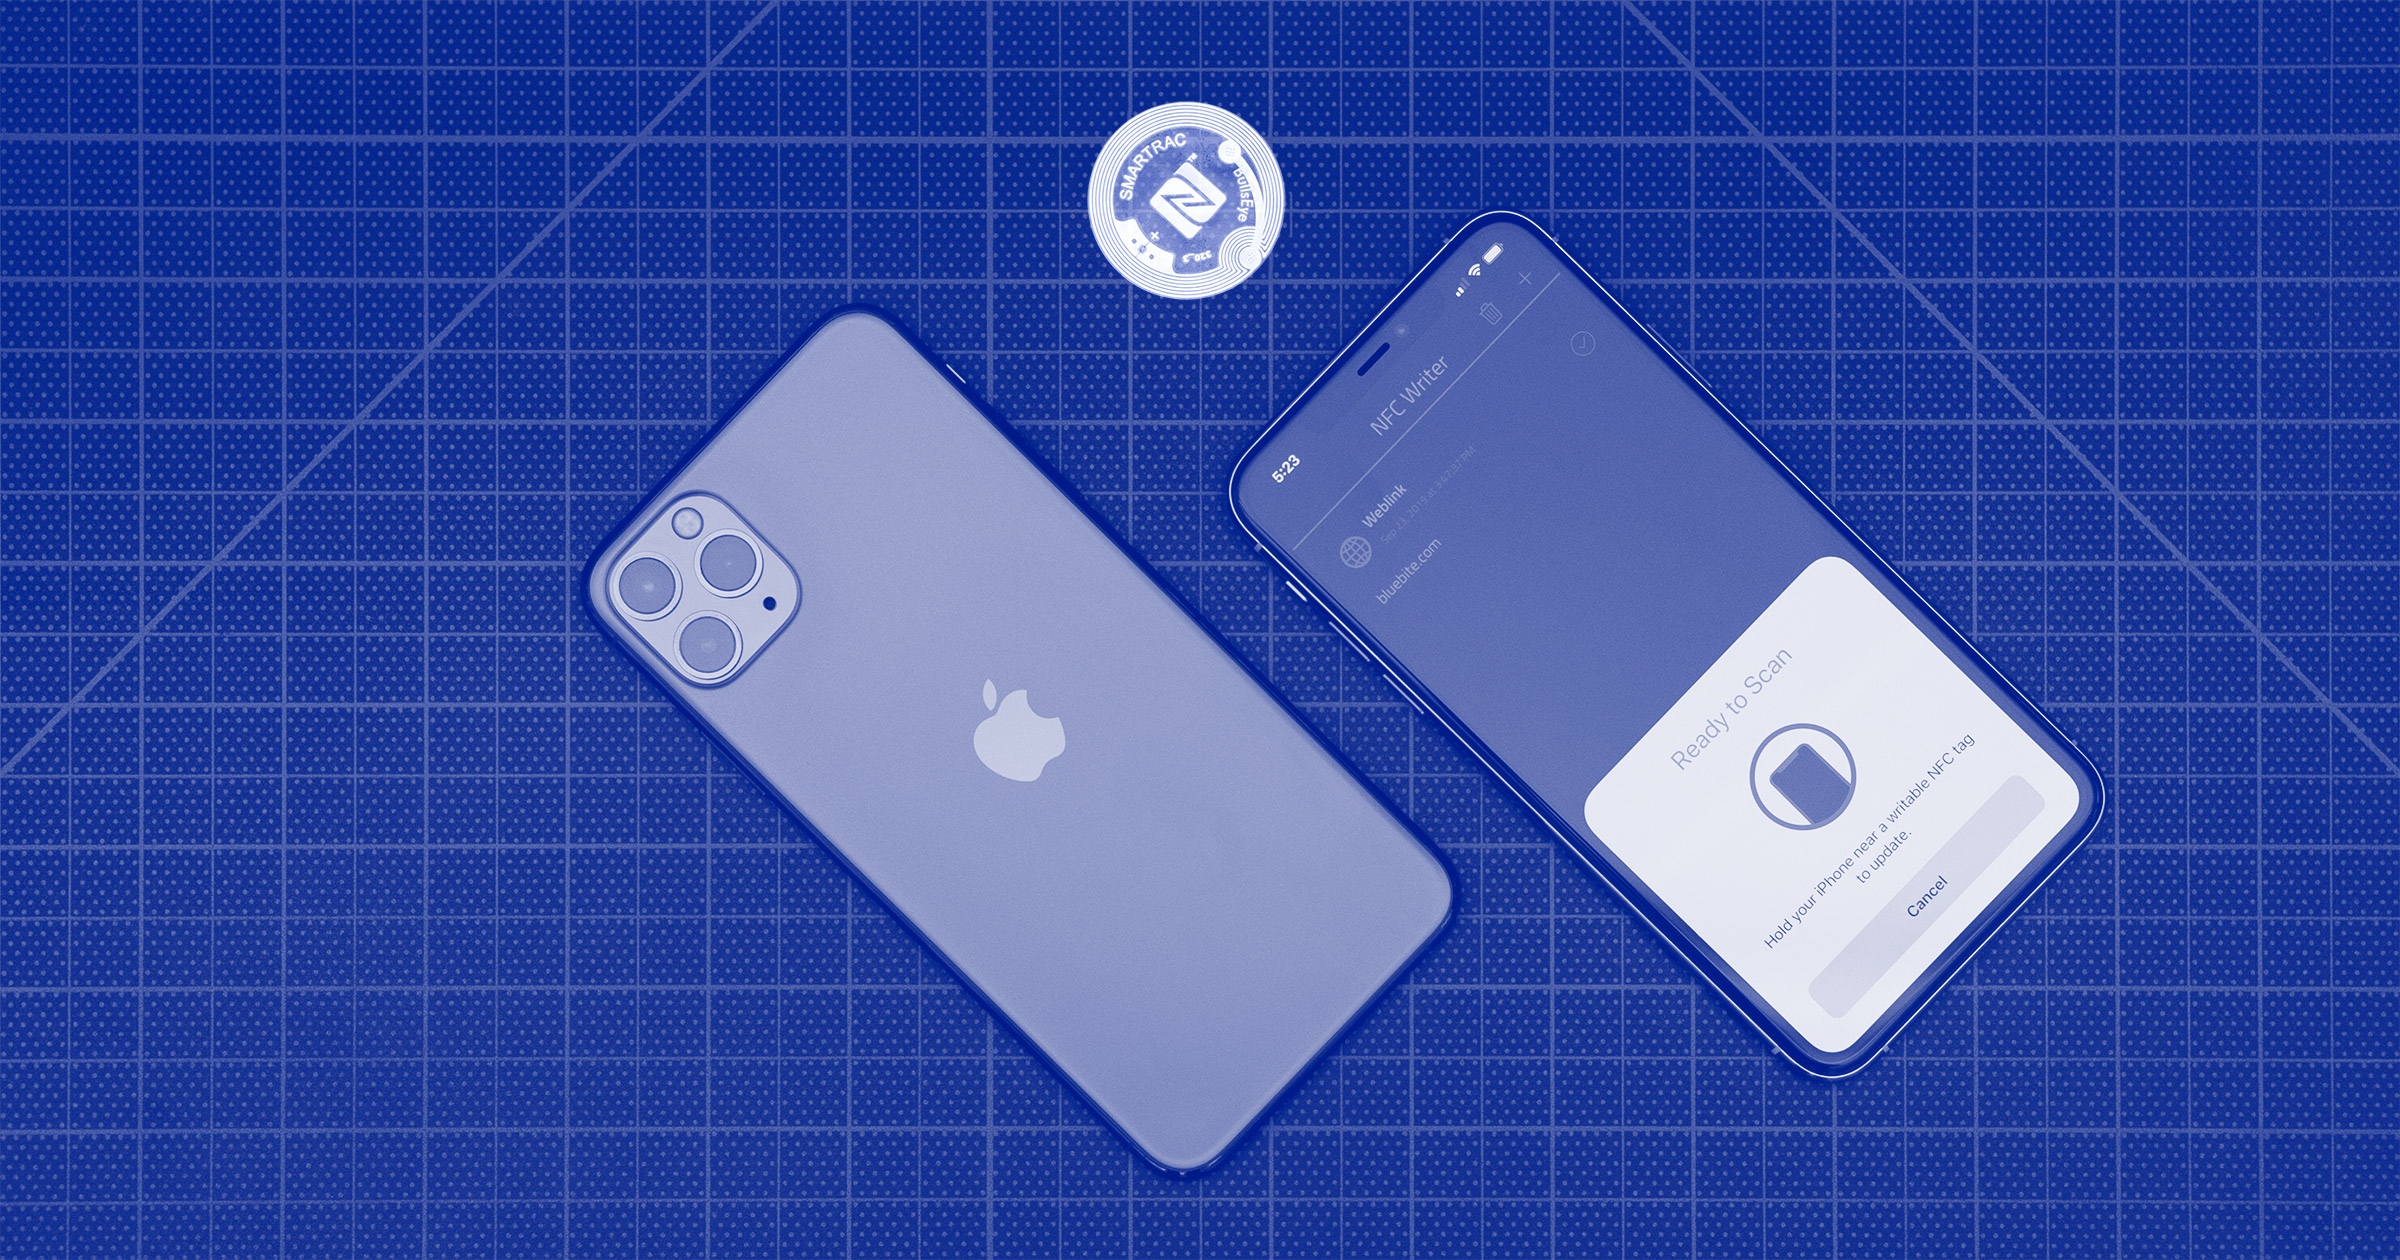 How to Write NFC Tags with iPhone Using iOS 14